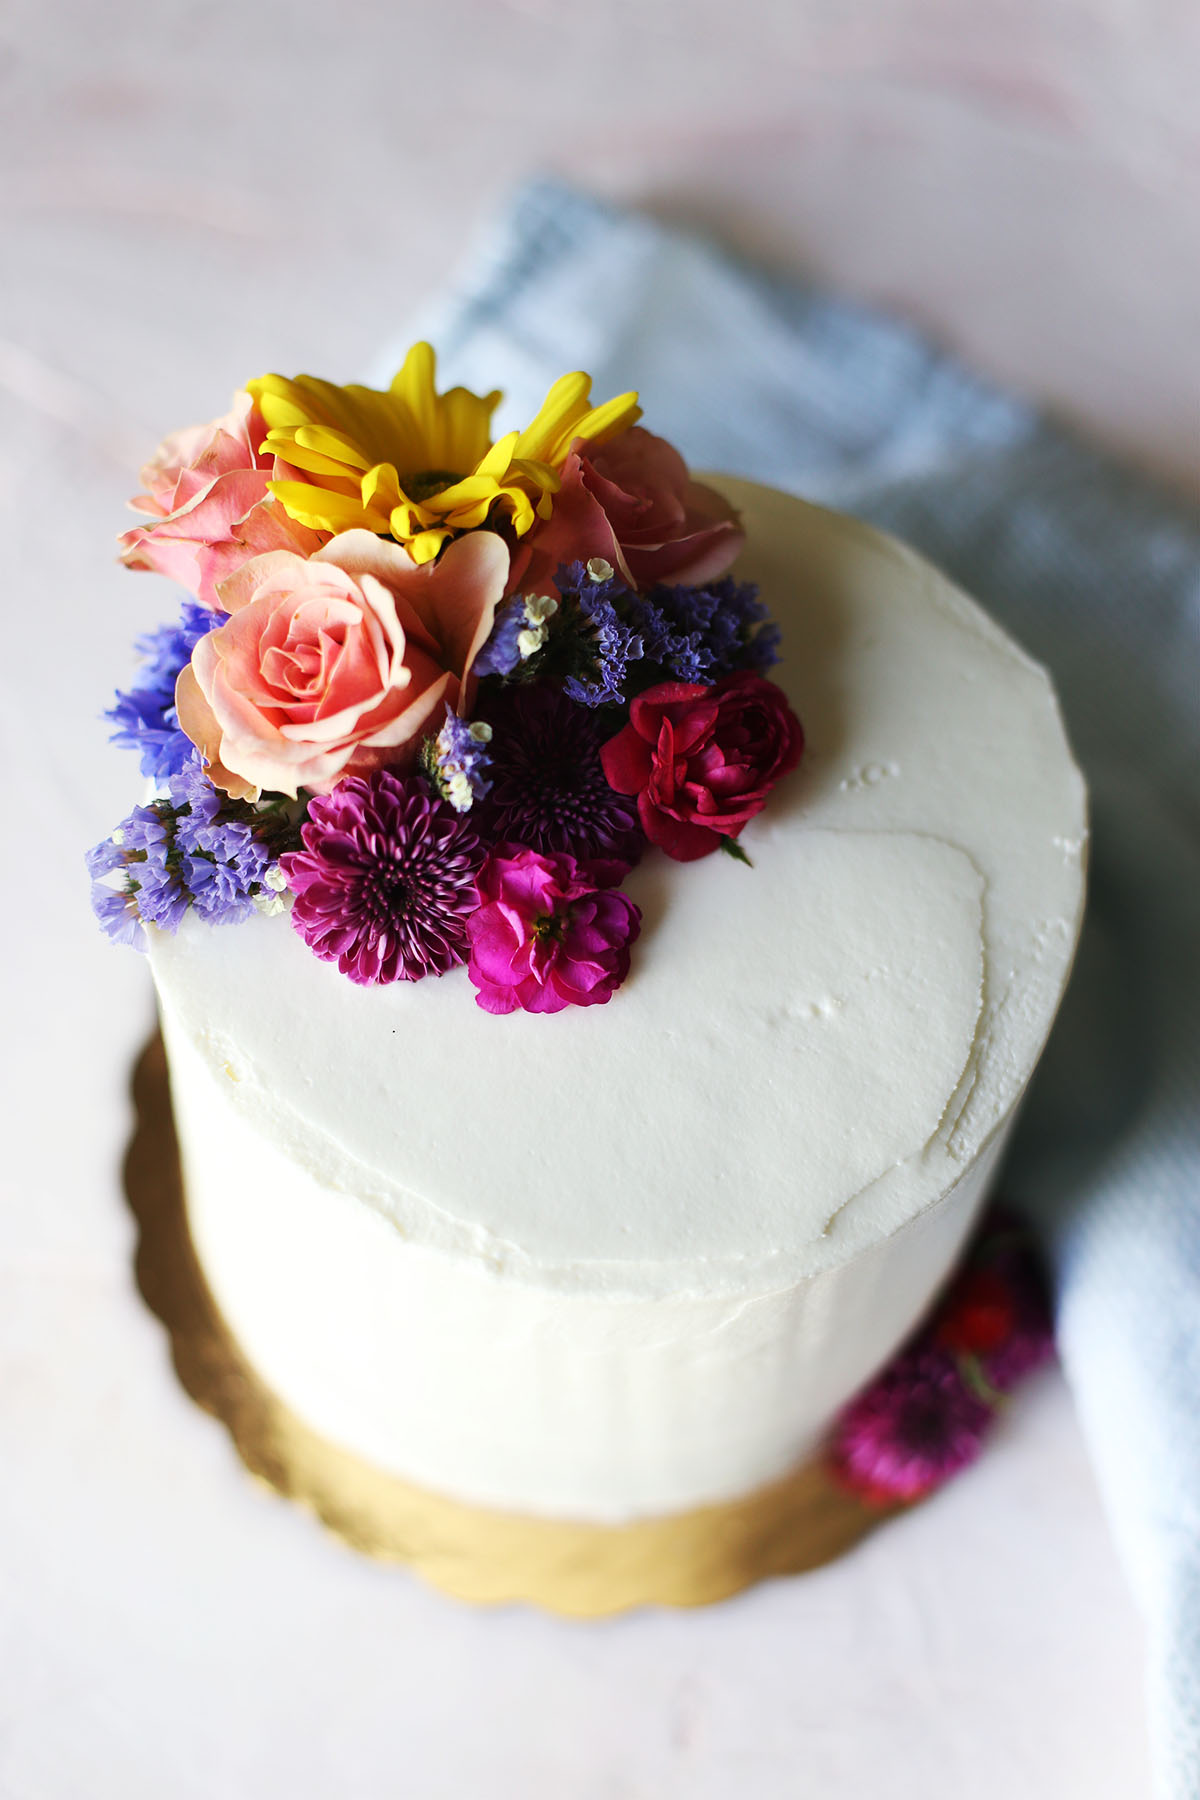 How To Decorate A Short Narrow Living Room: How To Decorate A Cake With Flowers